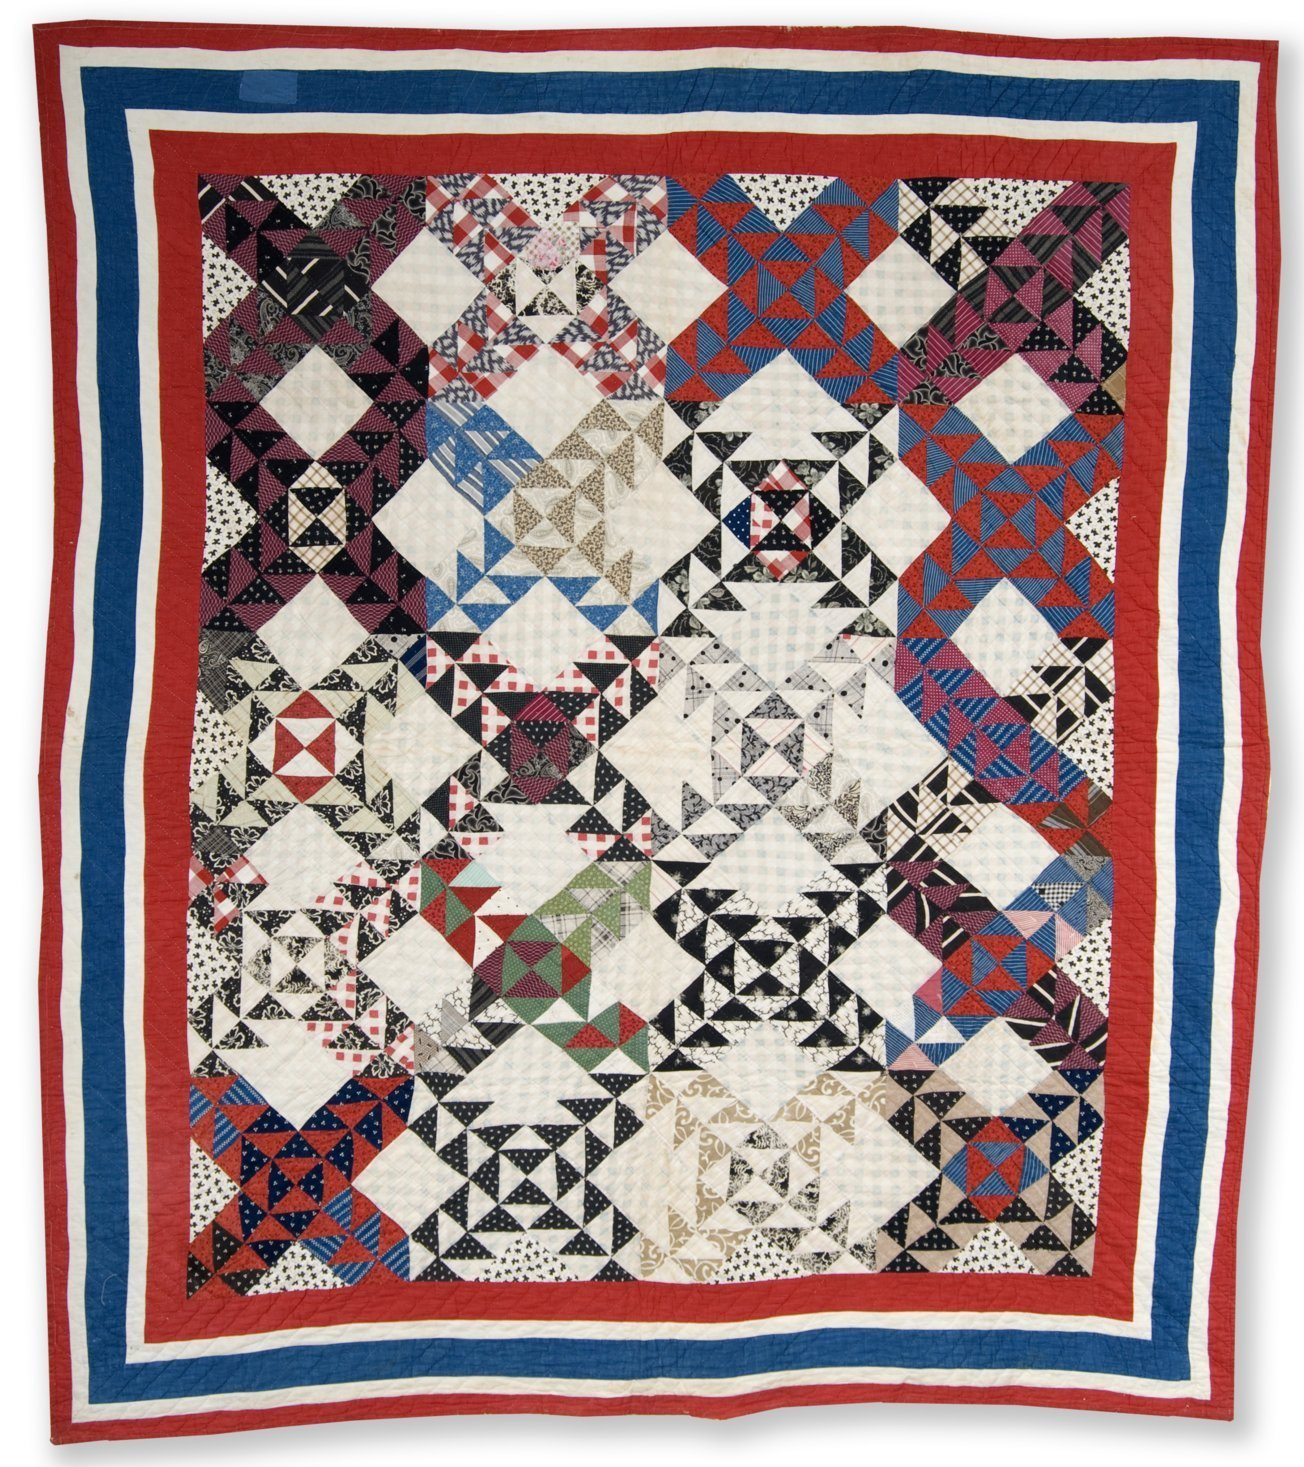 Old Maid's Ramble quilt